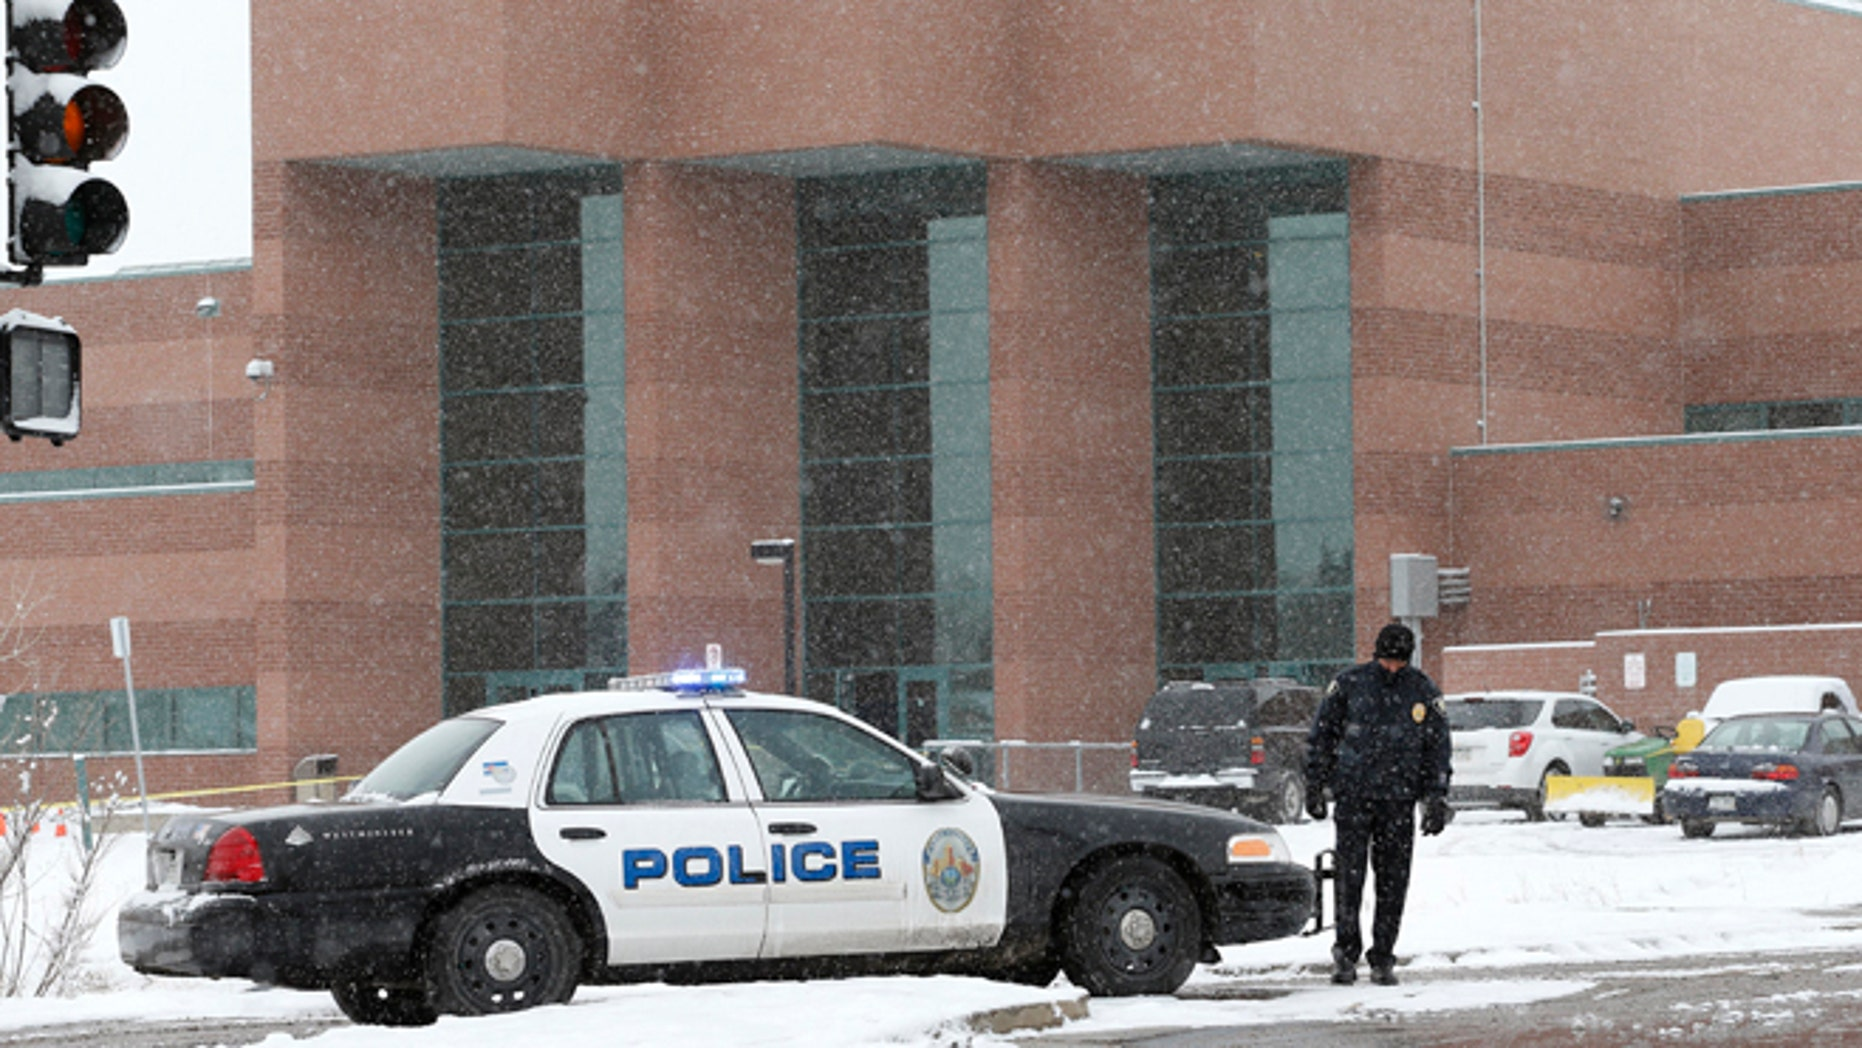 Jan. 27, 2014: A police cruiser blocks the entrance to Standley Lake HIgh School, where classes were cancelled after an apparent suicide attempt by a student, in Westminster, Colo.